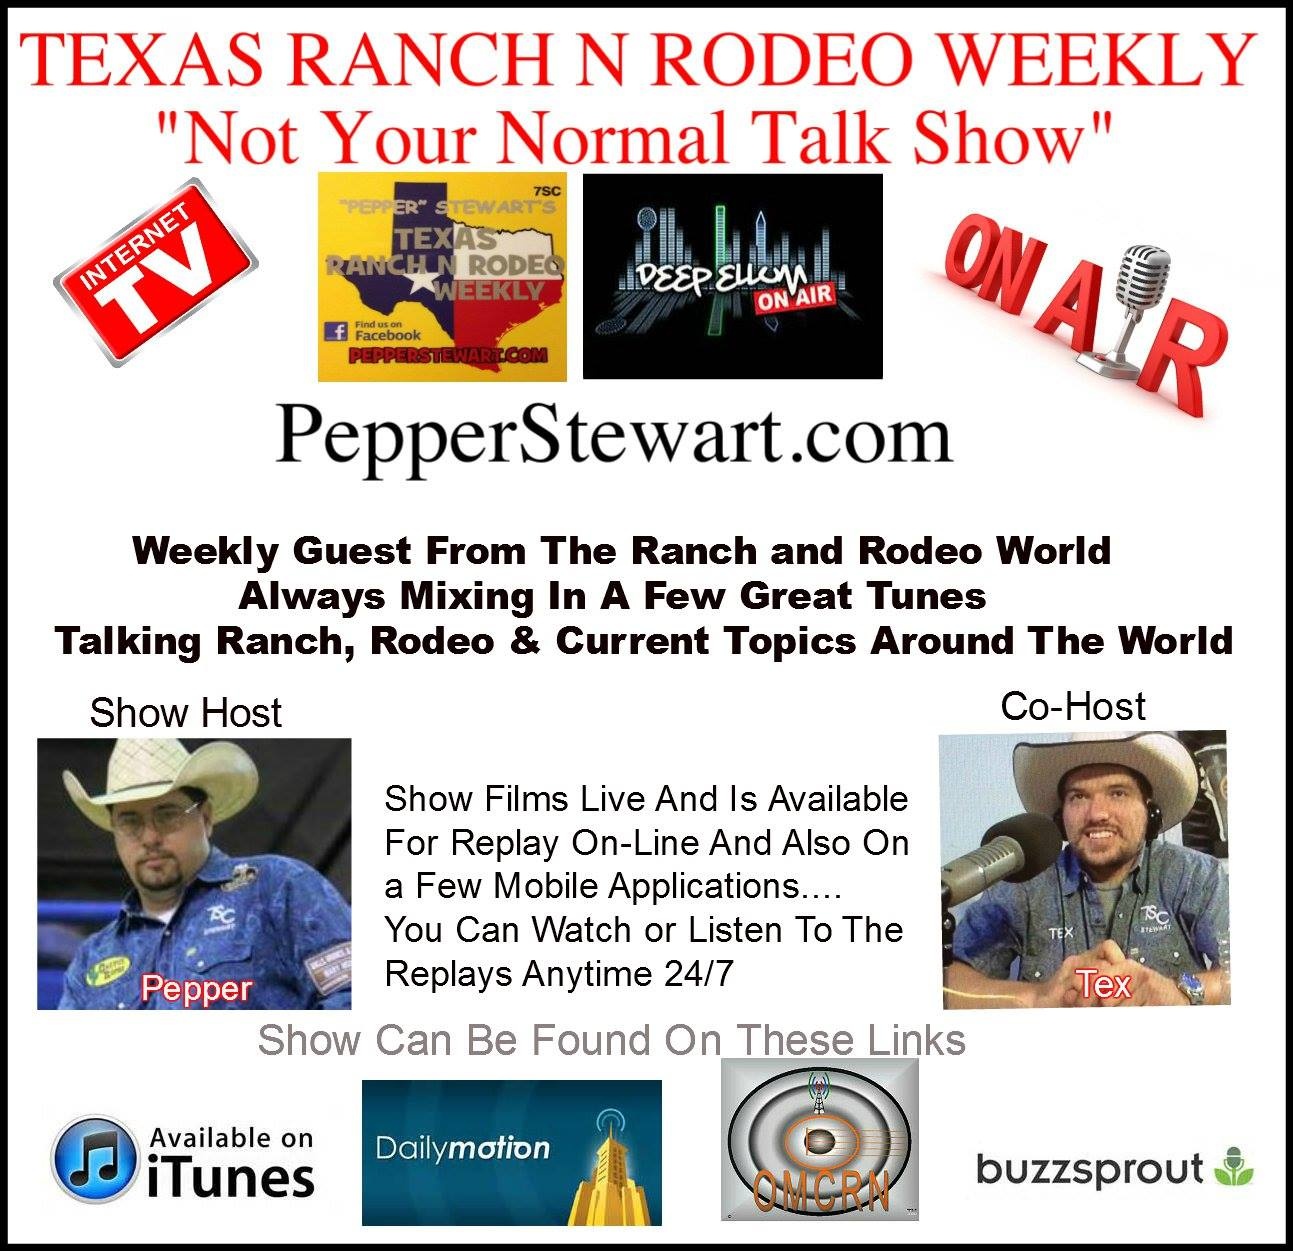 Sponsor - TX Ranch N Rodeo Weekly Talk Show